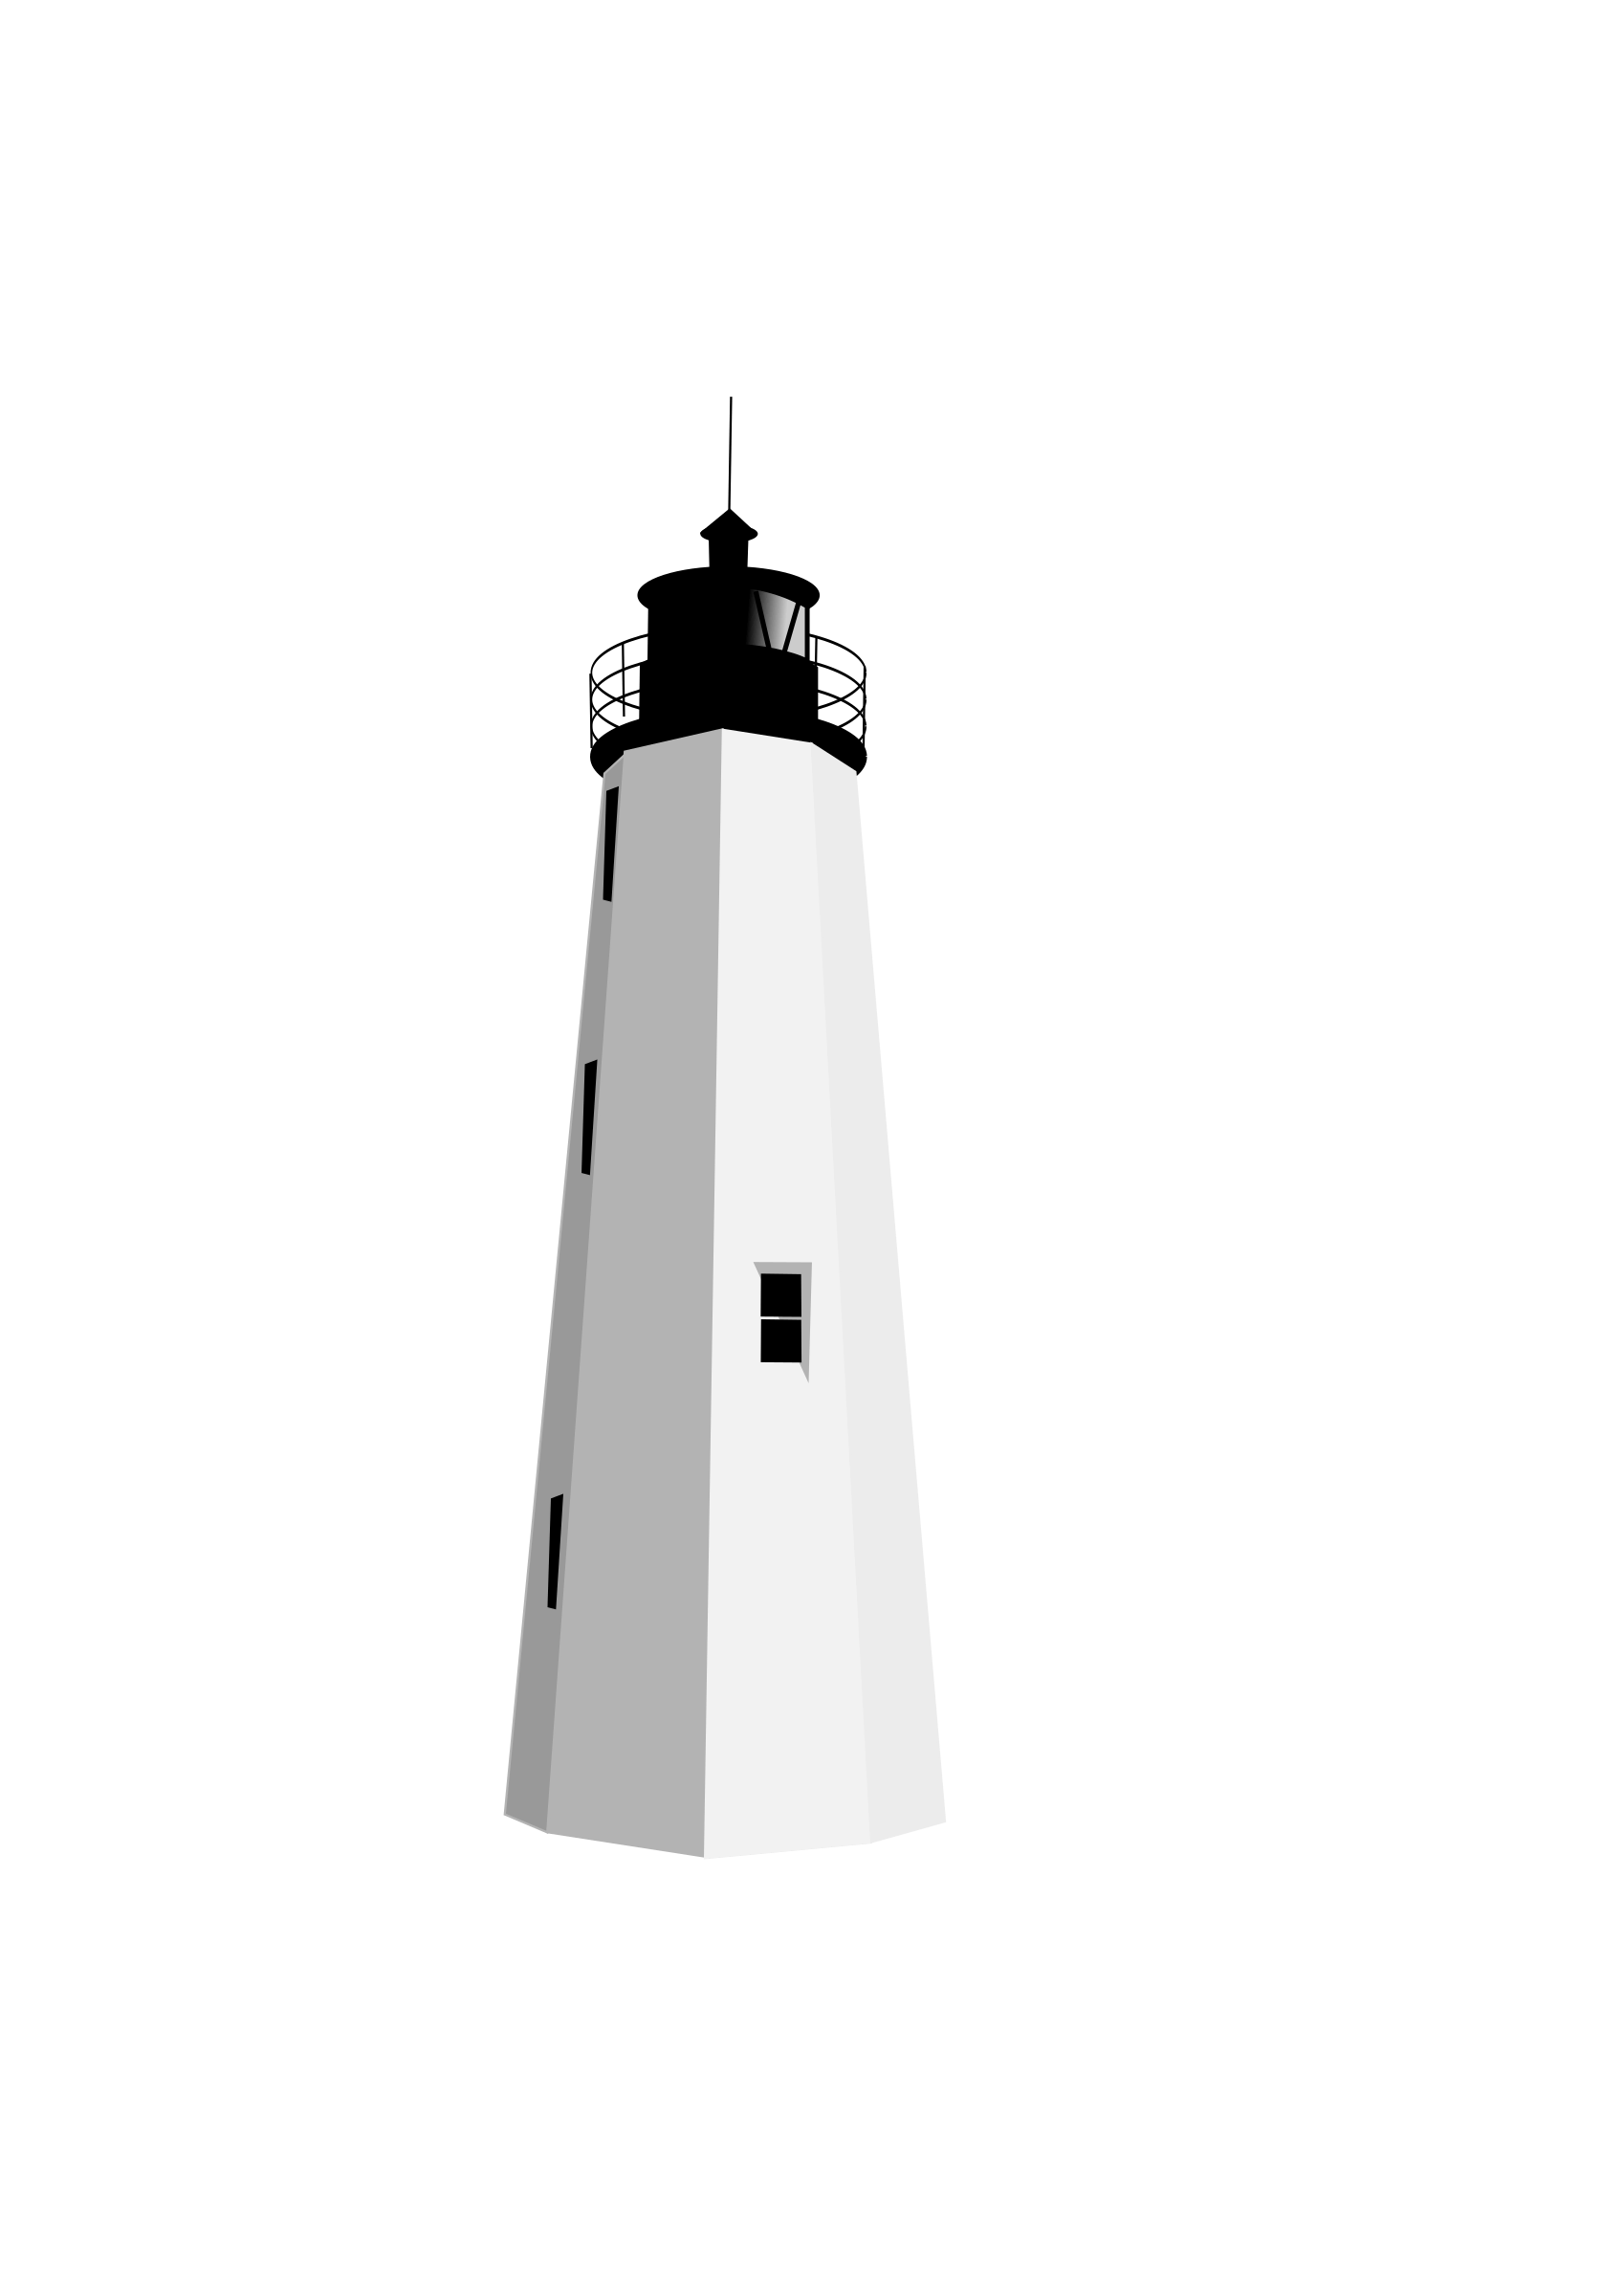 Square clipart lighthouse. Lighthouses transparent png images